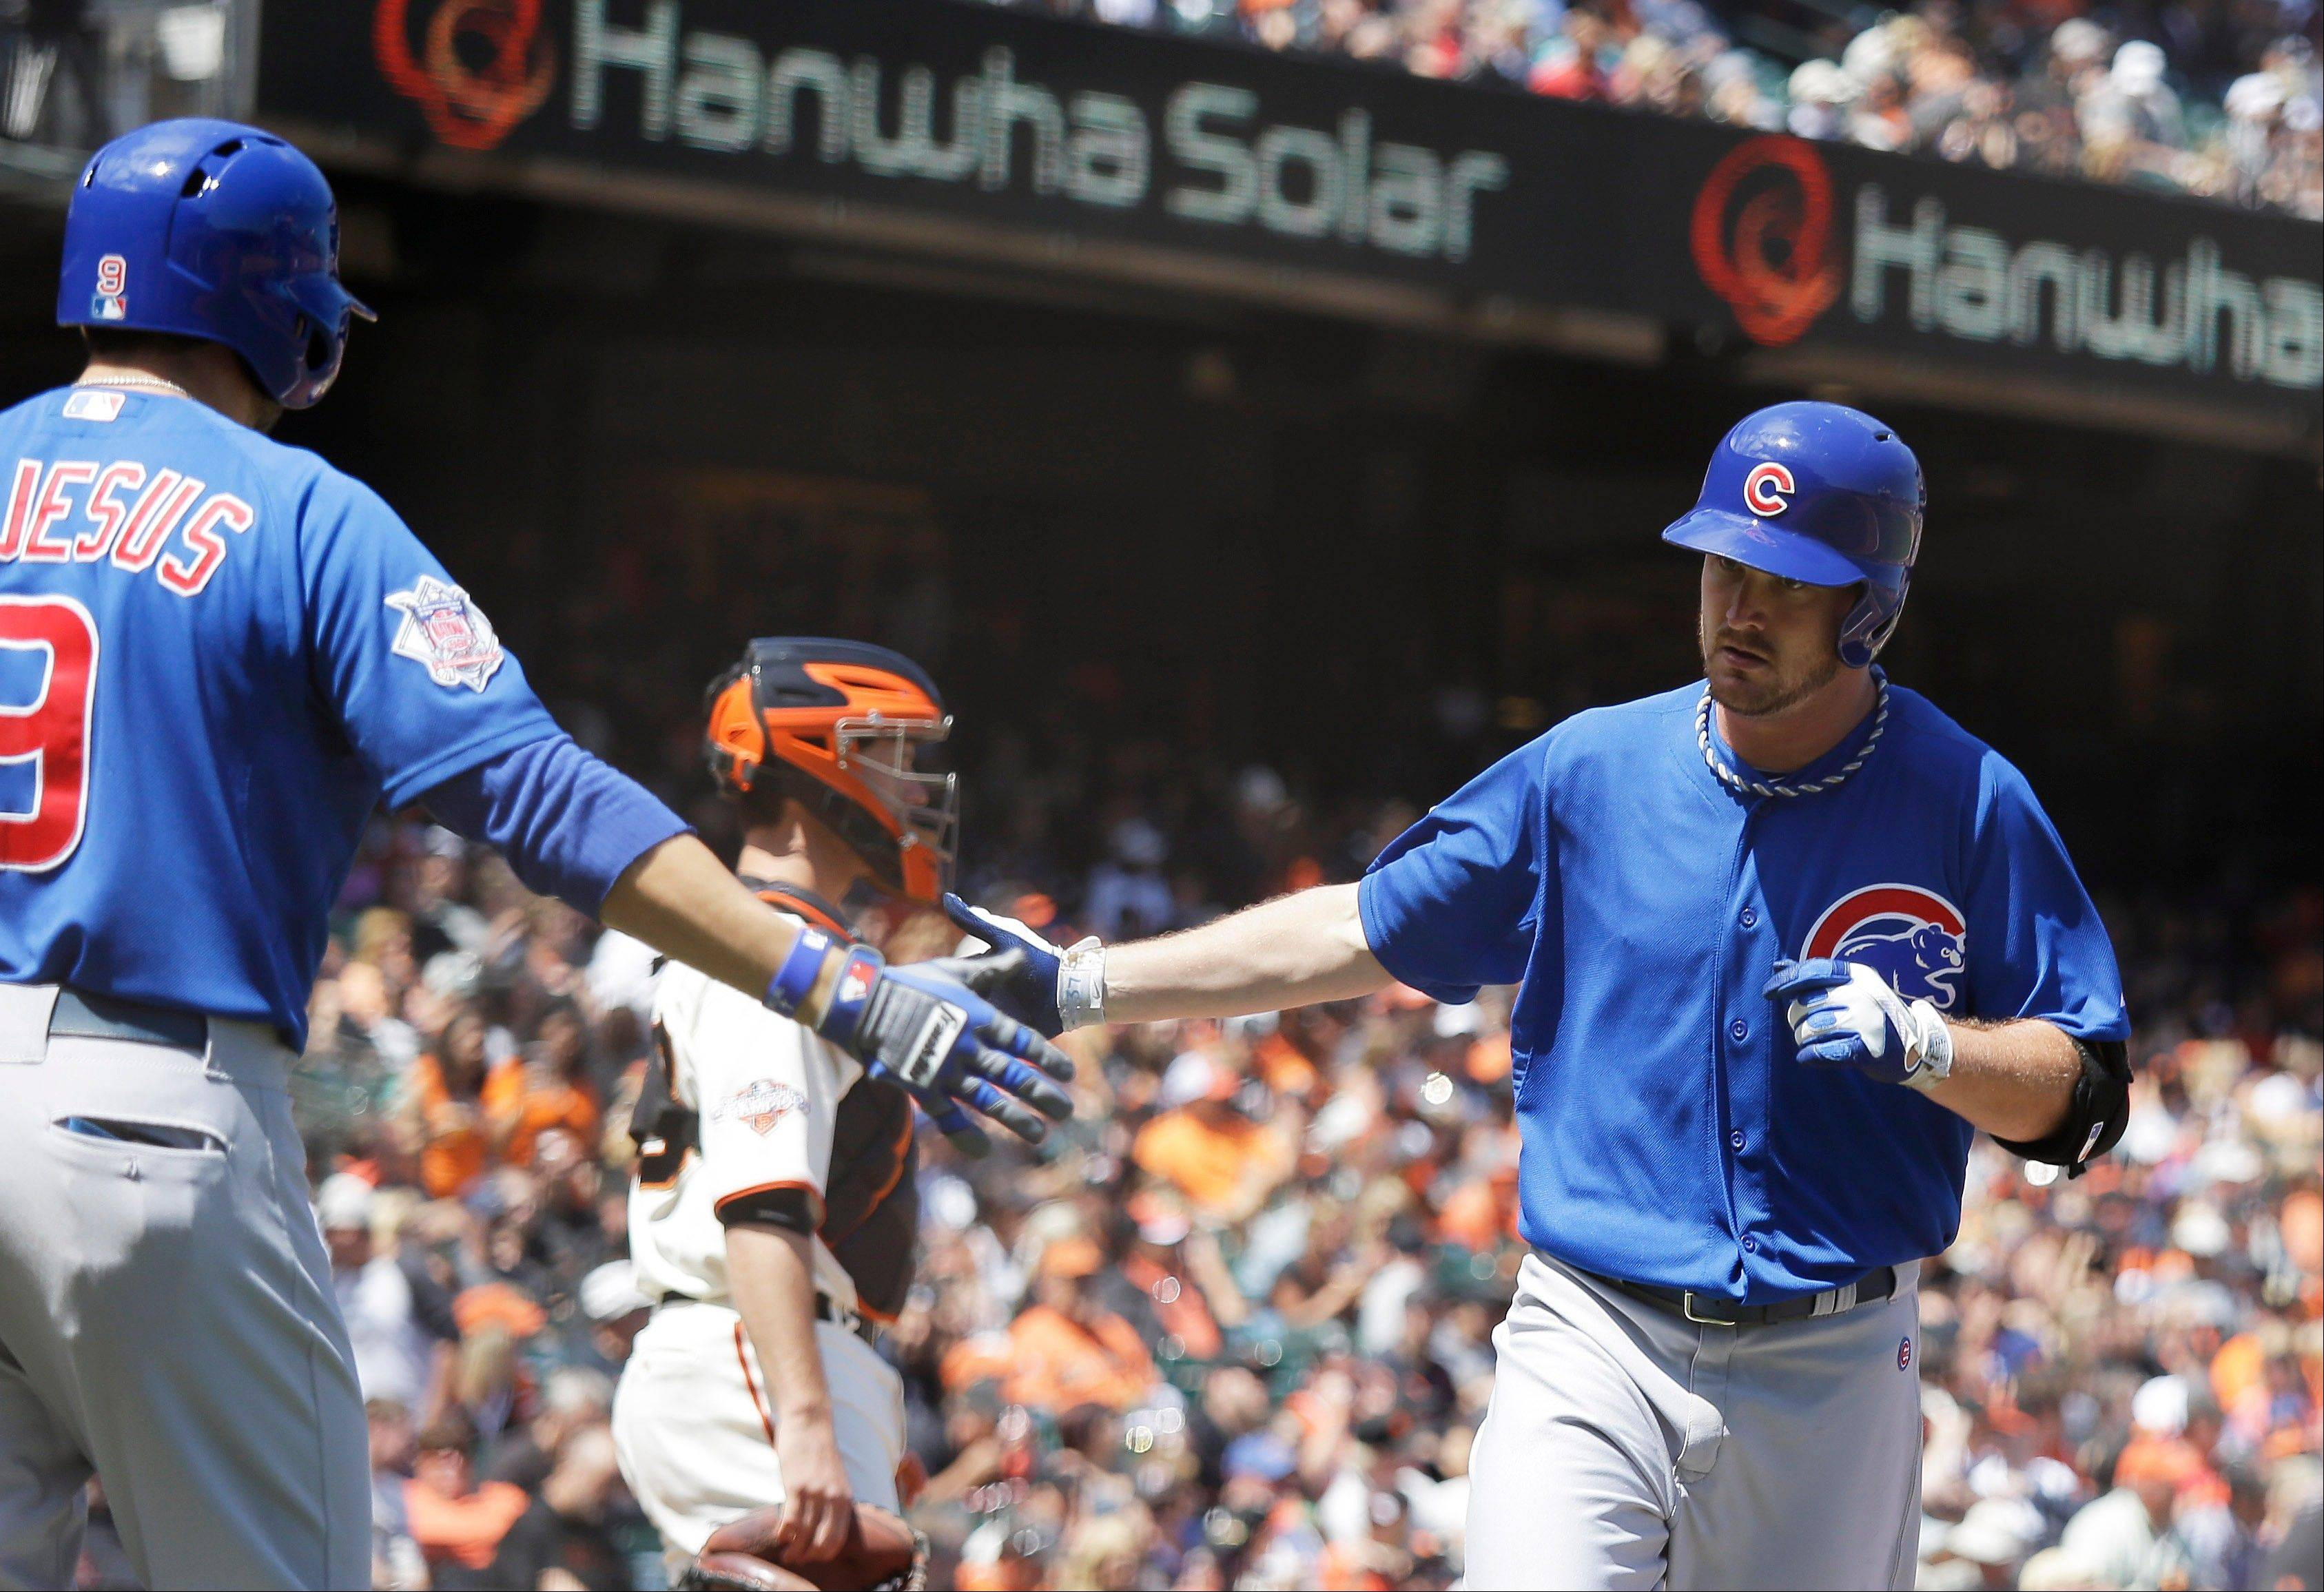 Cubs pitcher Travis Wood, right, is greeted by teammate David DeJesus, left, after hitting a home run off San Francisco Giants starting pitcher Tim Lincecum during Sunday�s fifth inning in San Francisco.